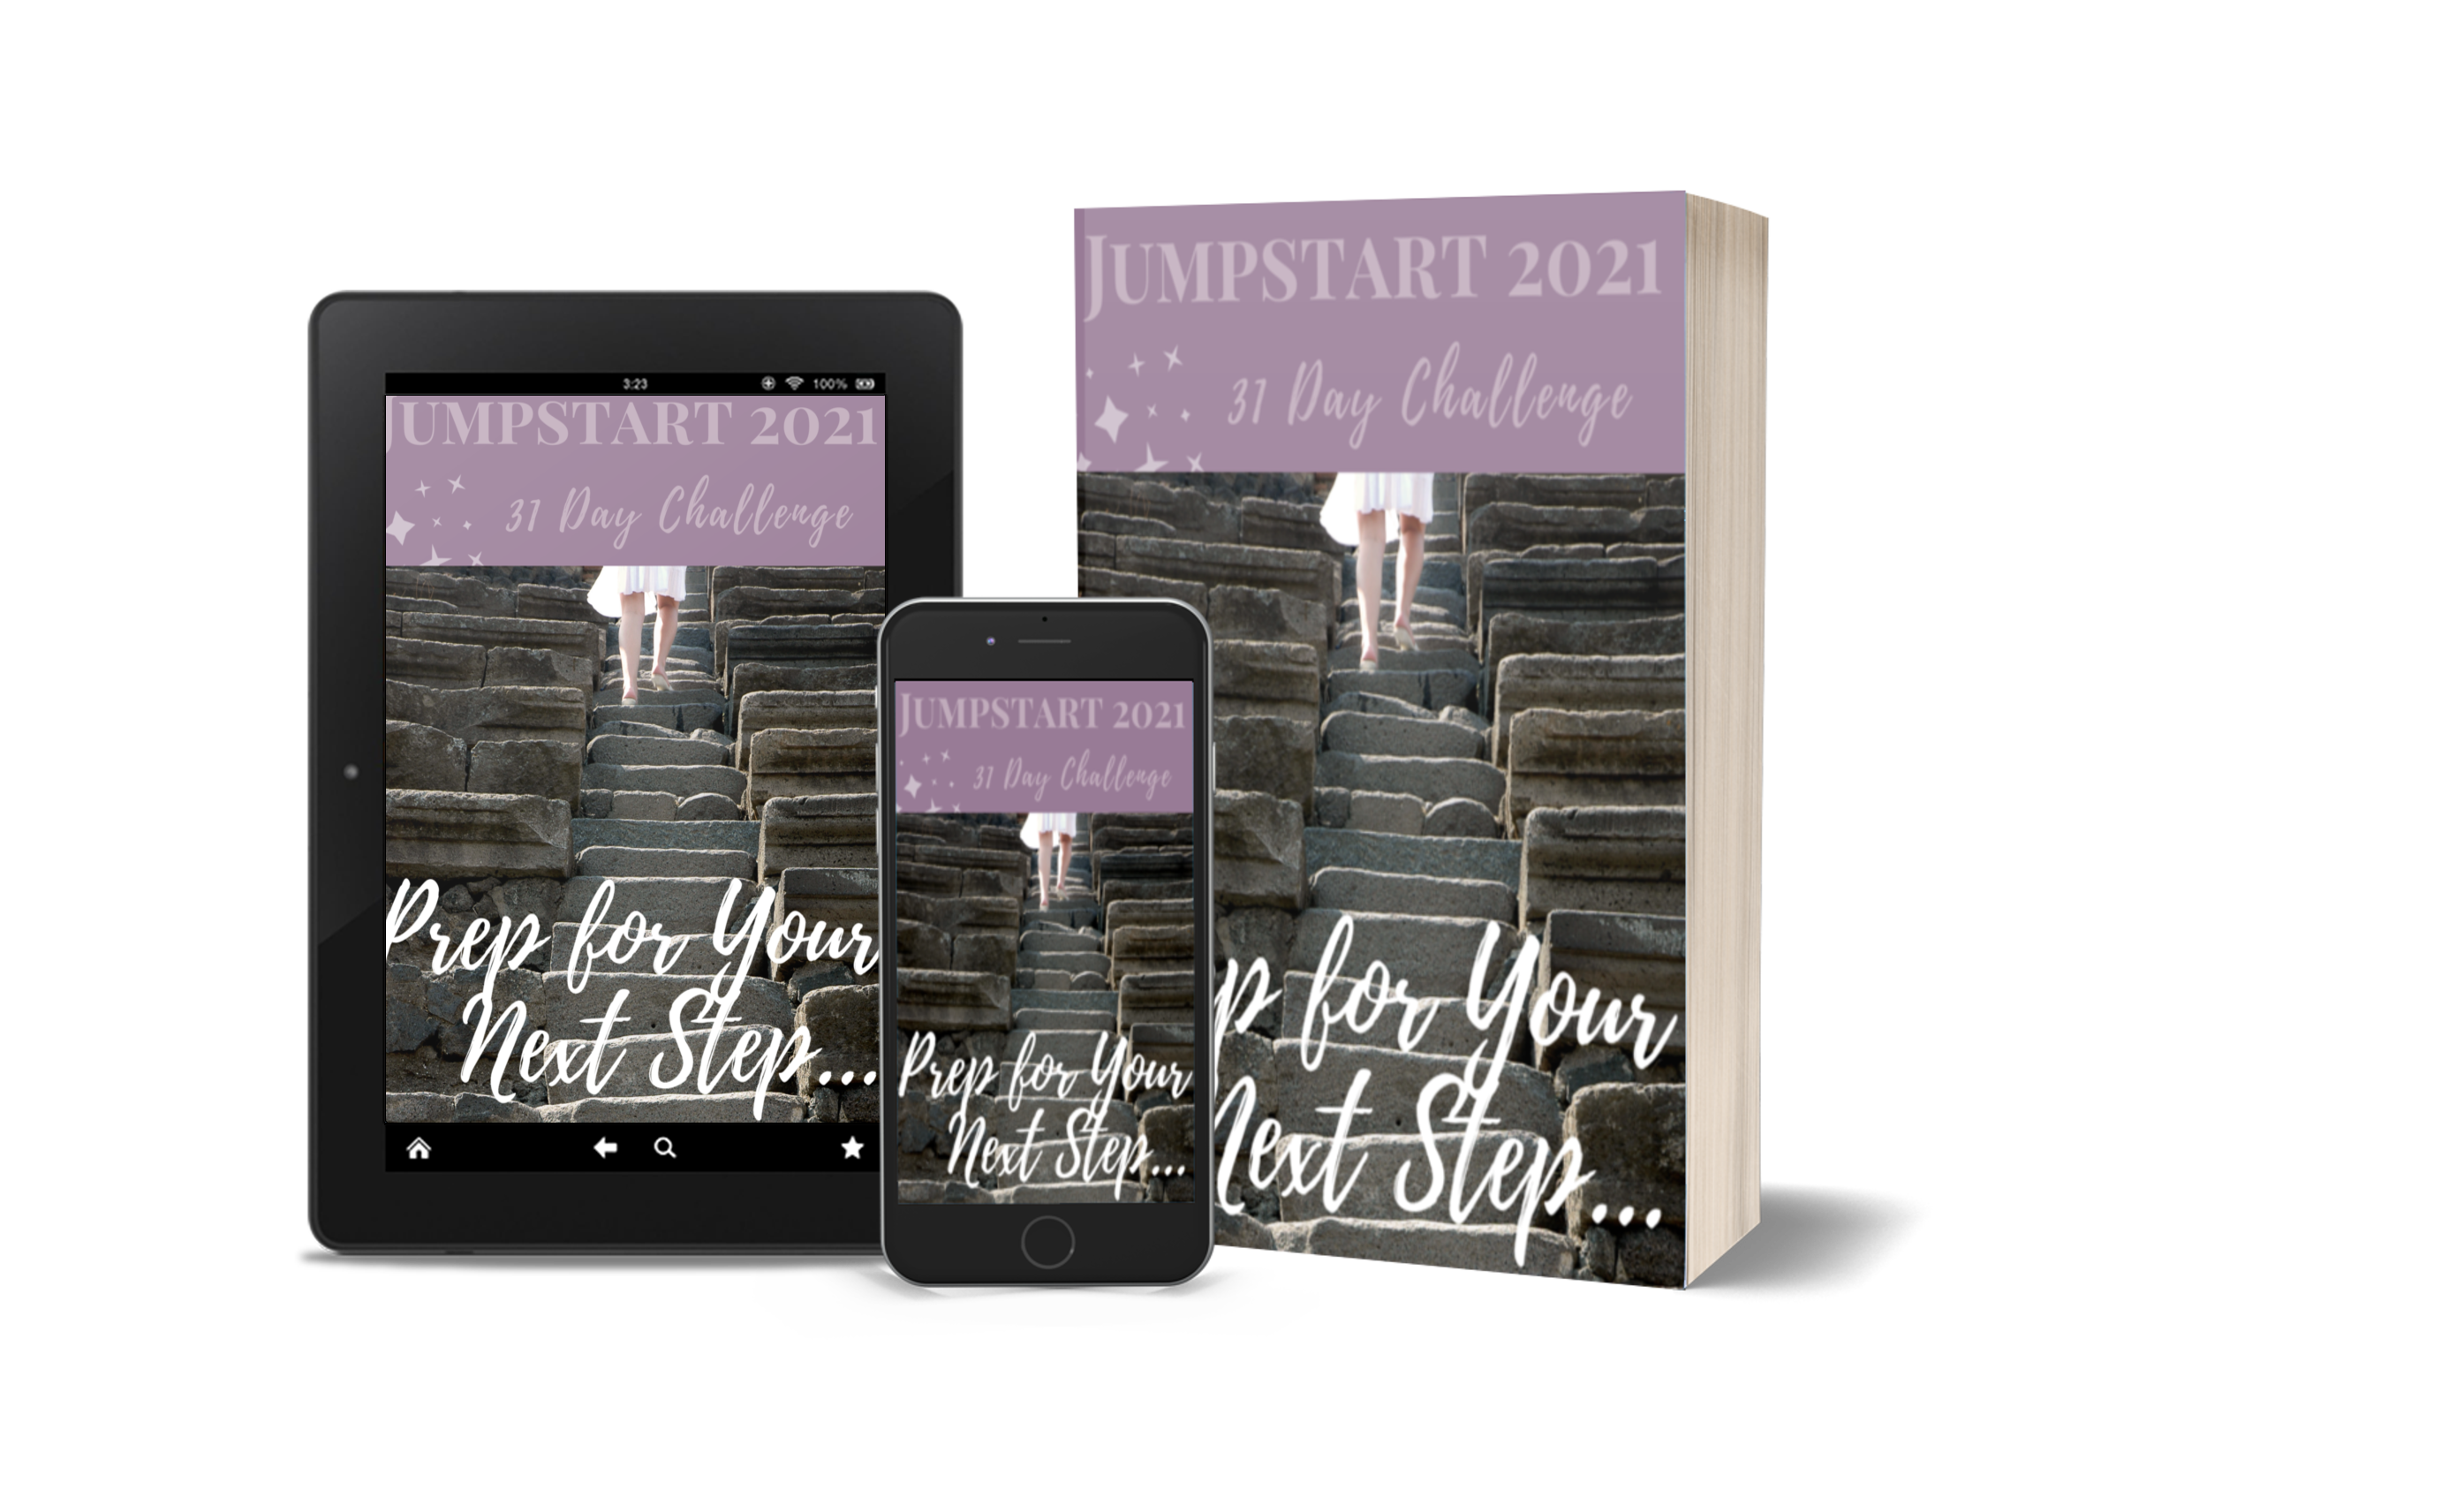 Jumpstart 2021 31 Day Challenge